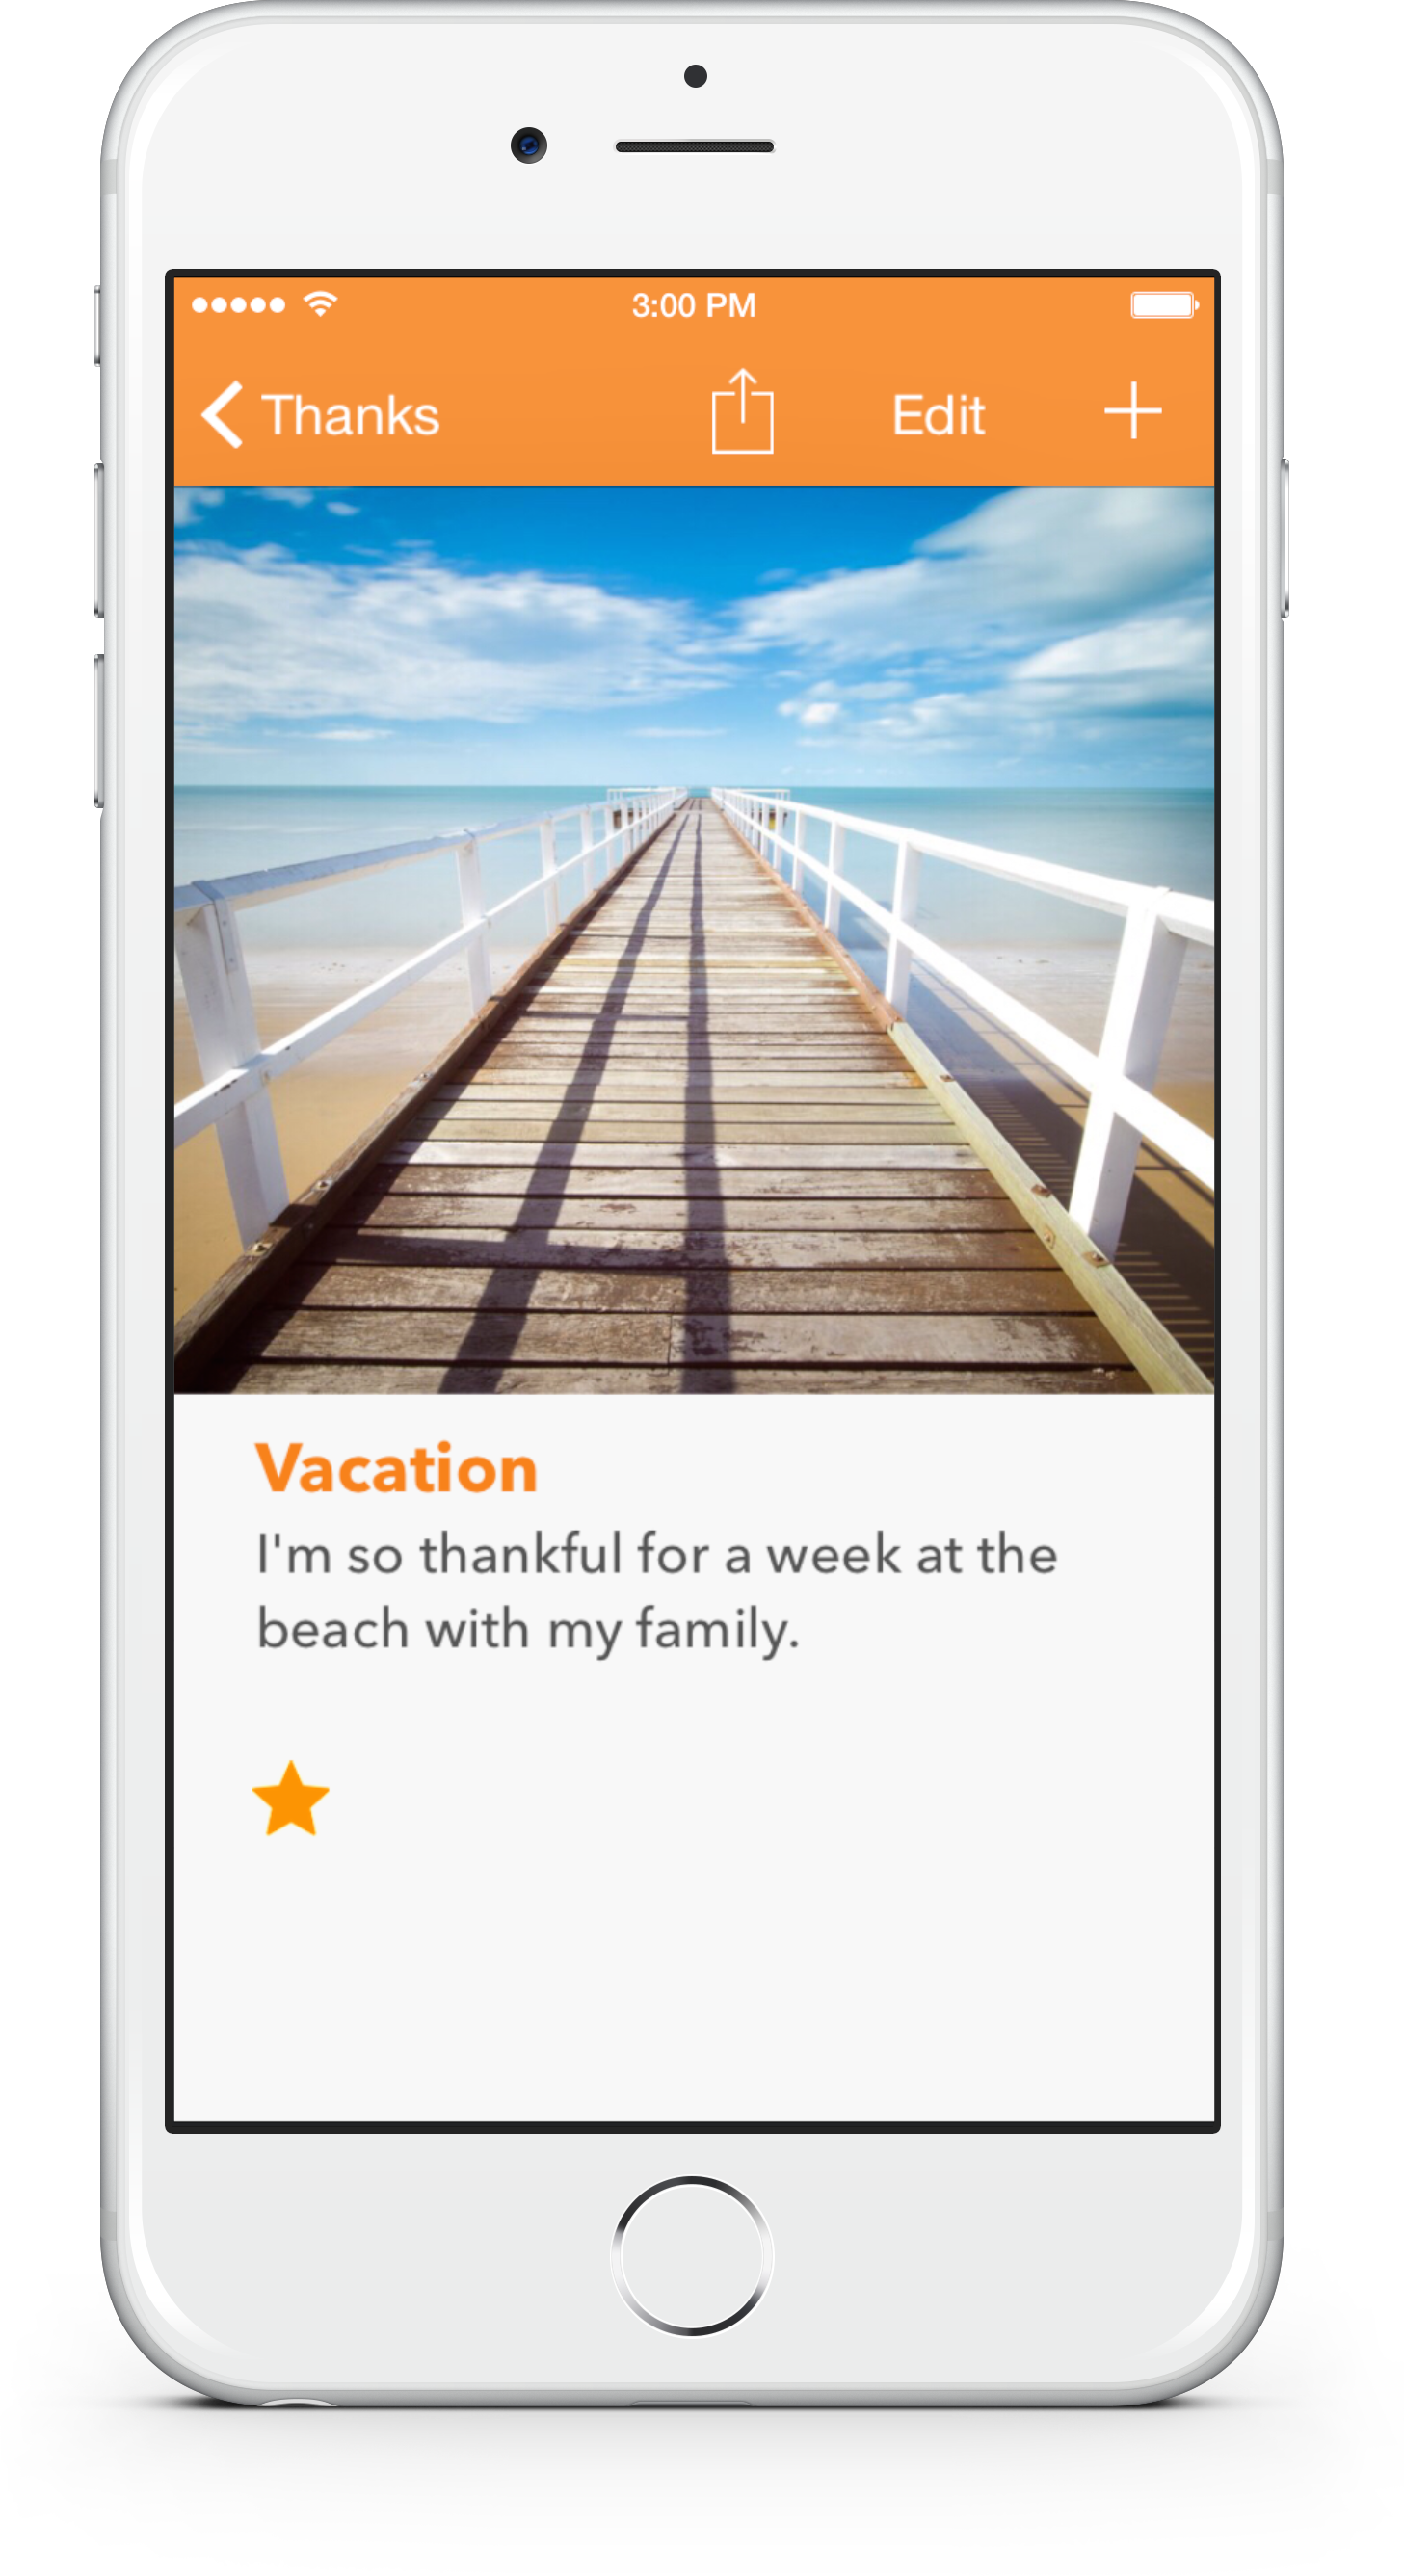 http://wantsandneedsapp.com/wp-content/uploads/2015/01/Wants-and-Needs-iPhone-Vacation-New.png